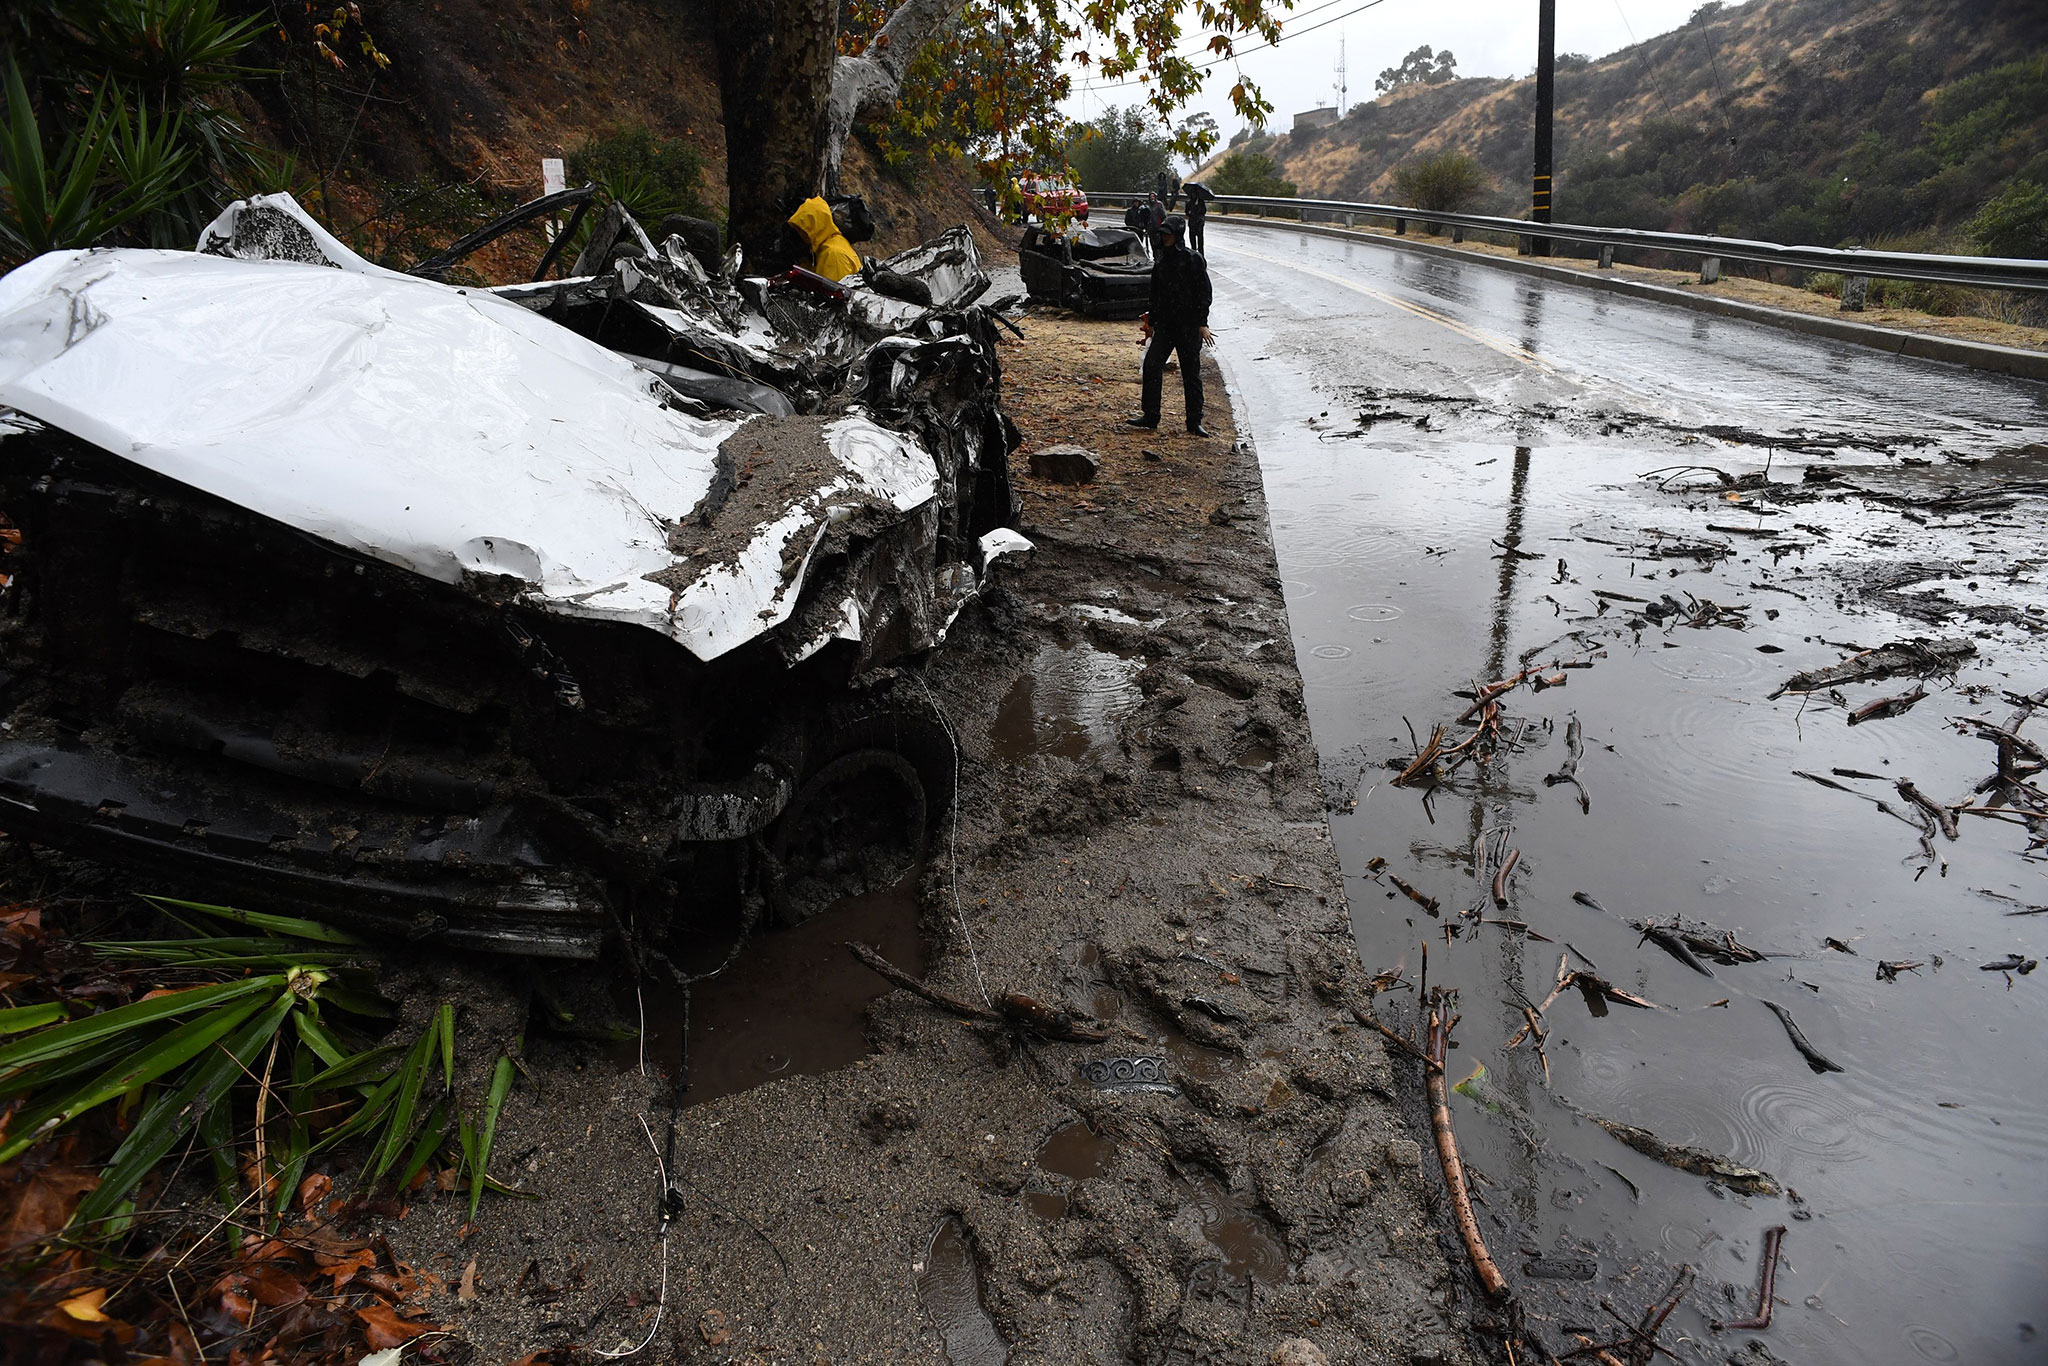 Mudslides Are Drowning California—The State's Extreme Weather Explained